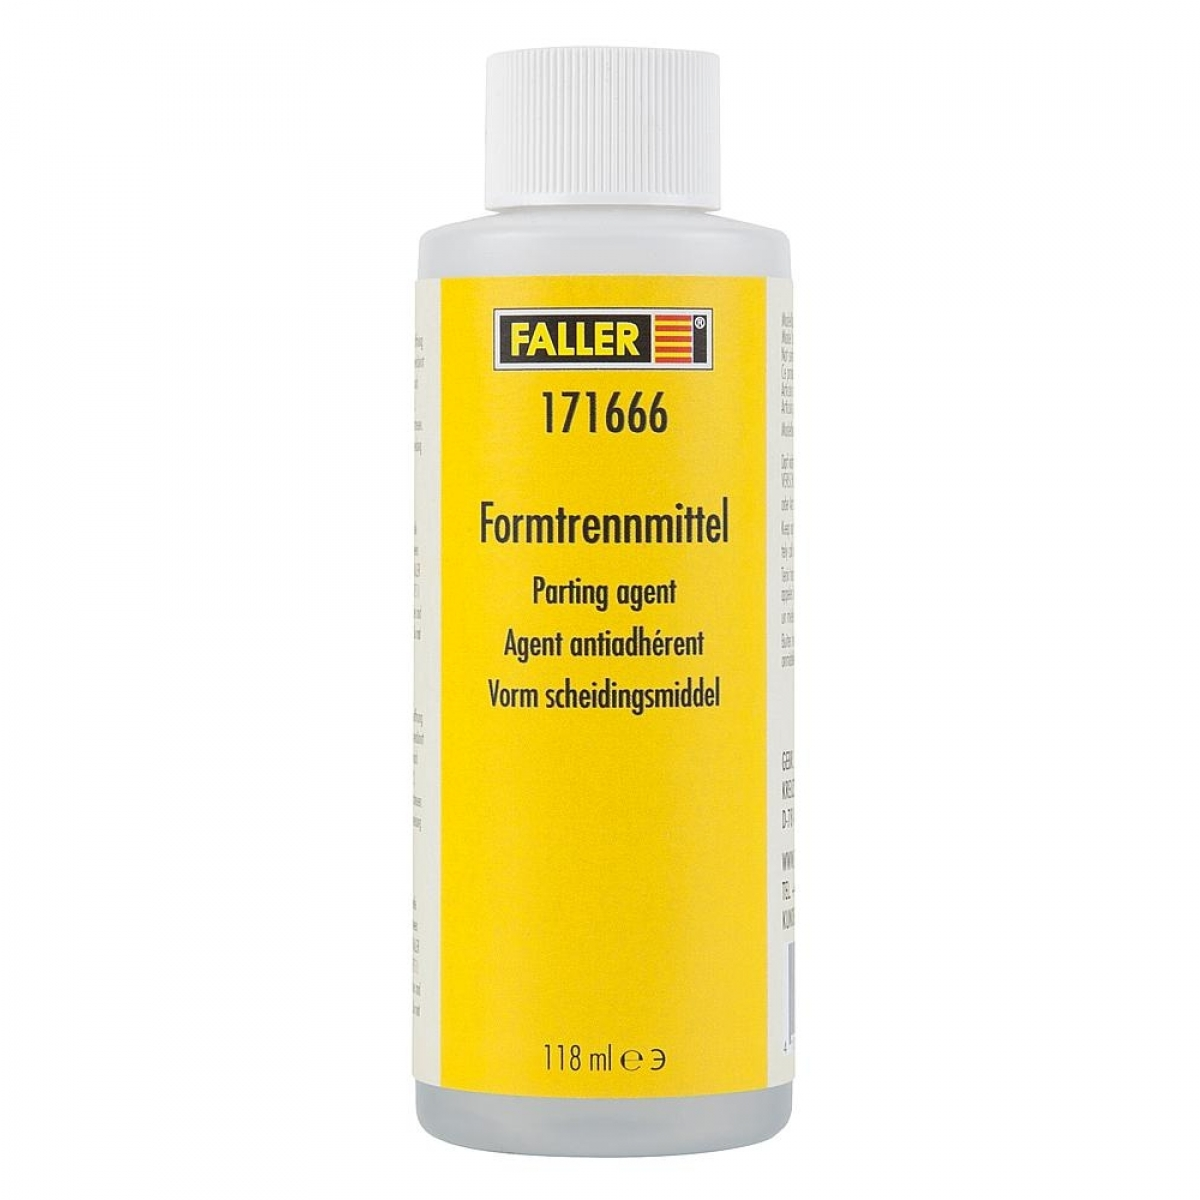 Faller 171666 Formtrennmittel 118 ml